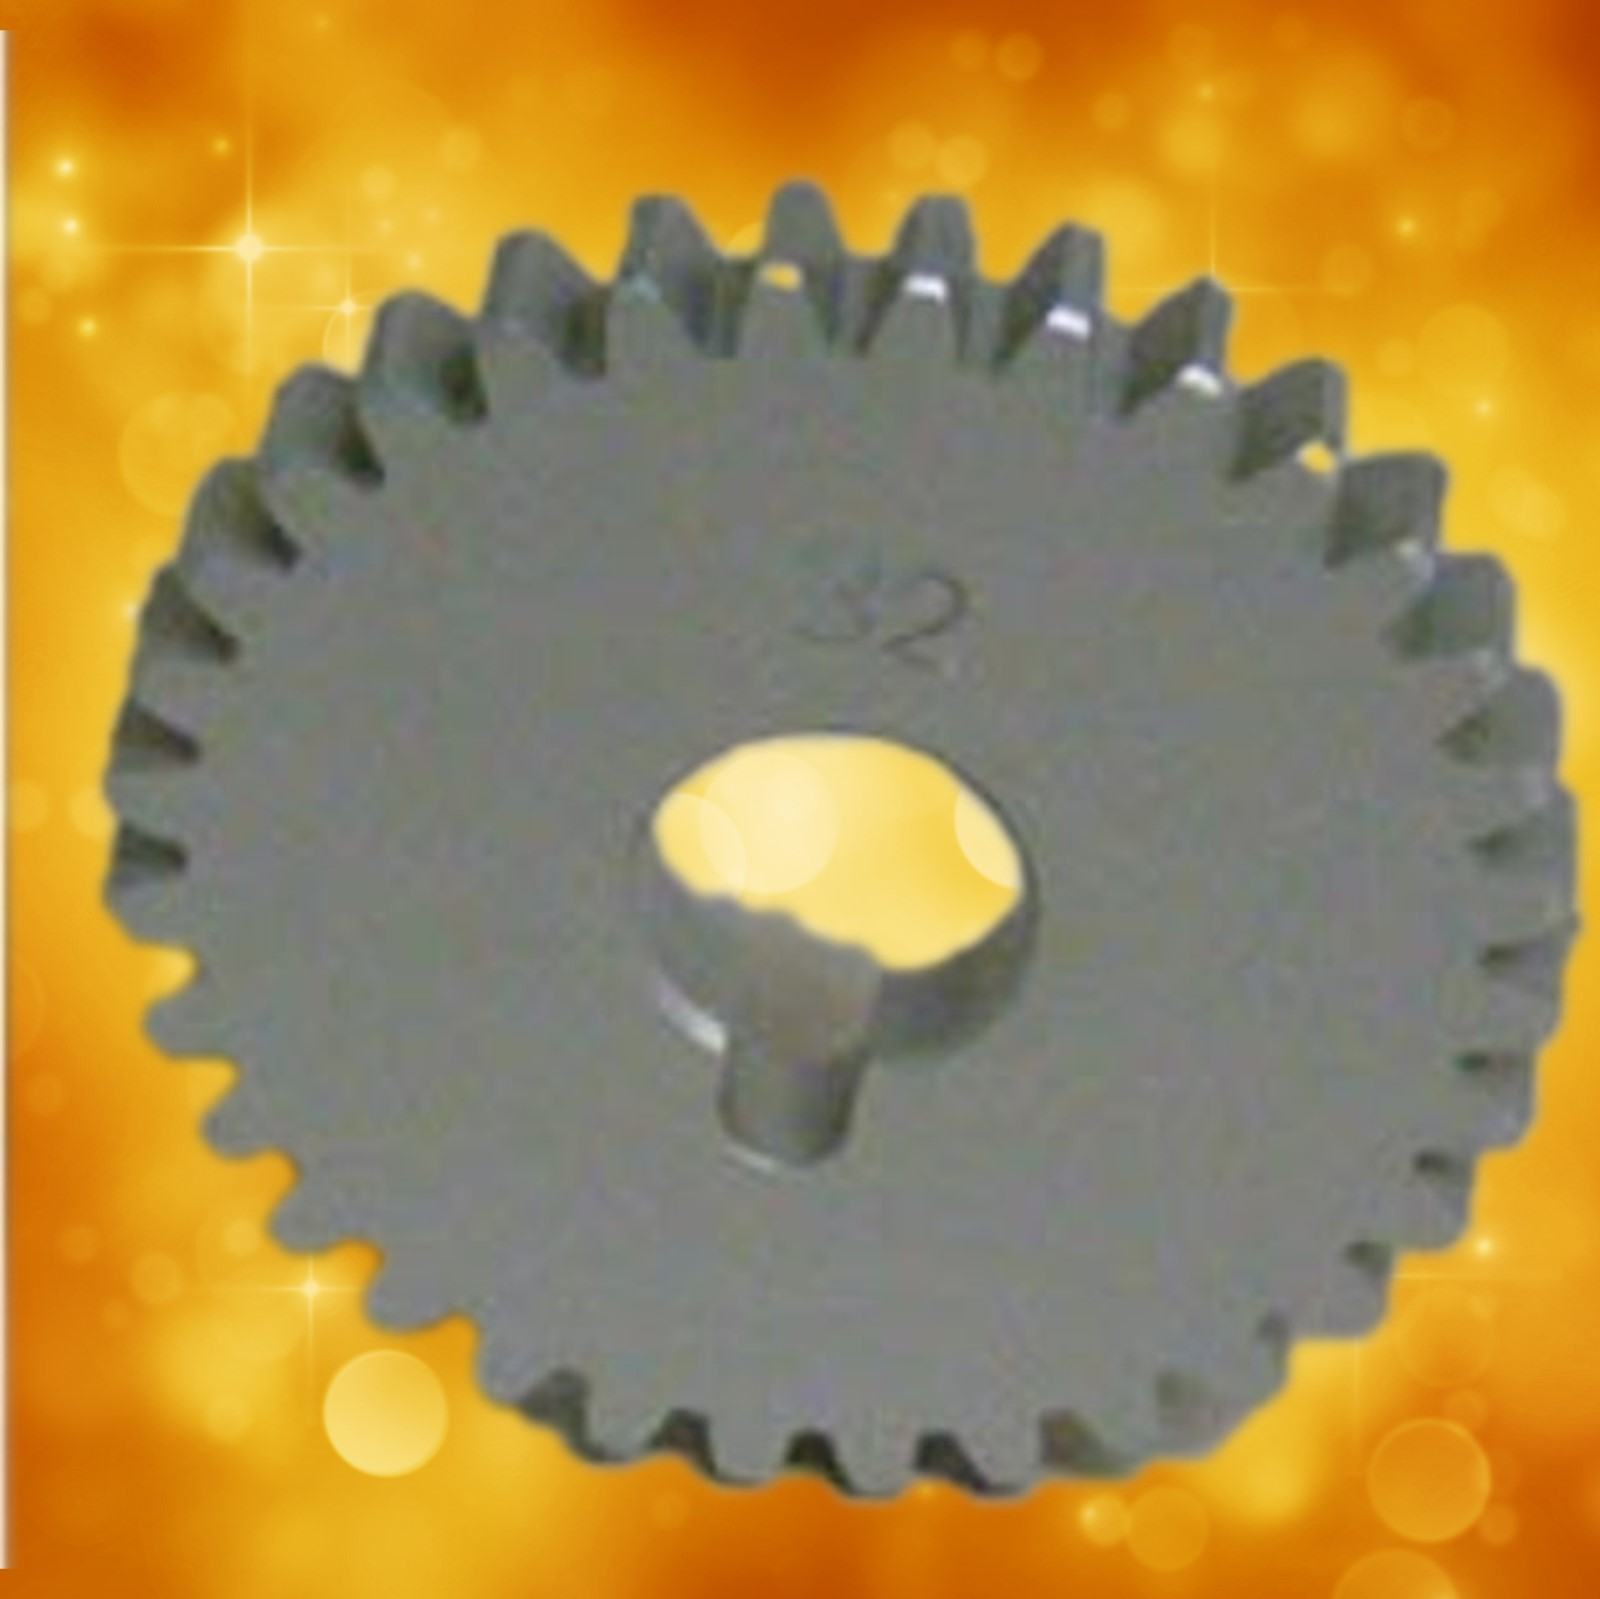 Sherline 32 Tooth Gear 31320 31320